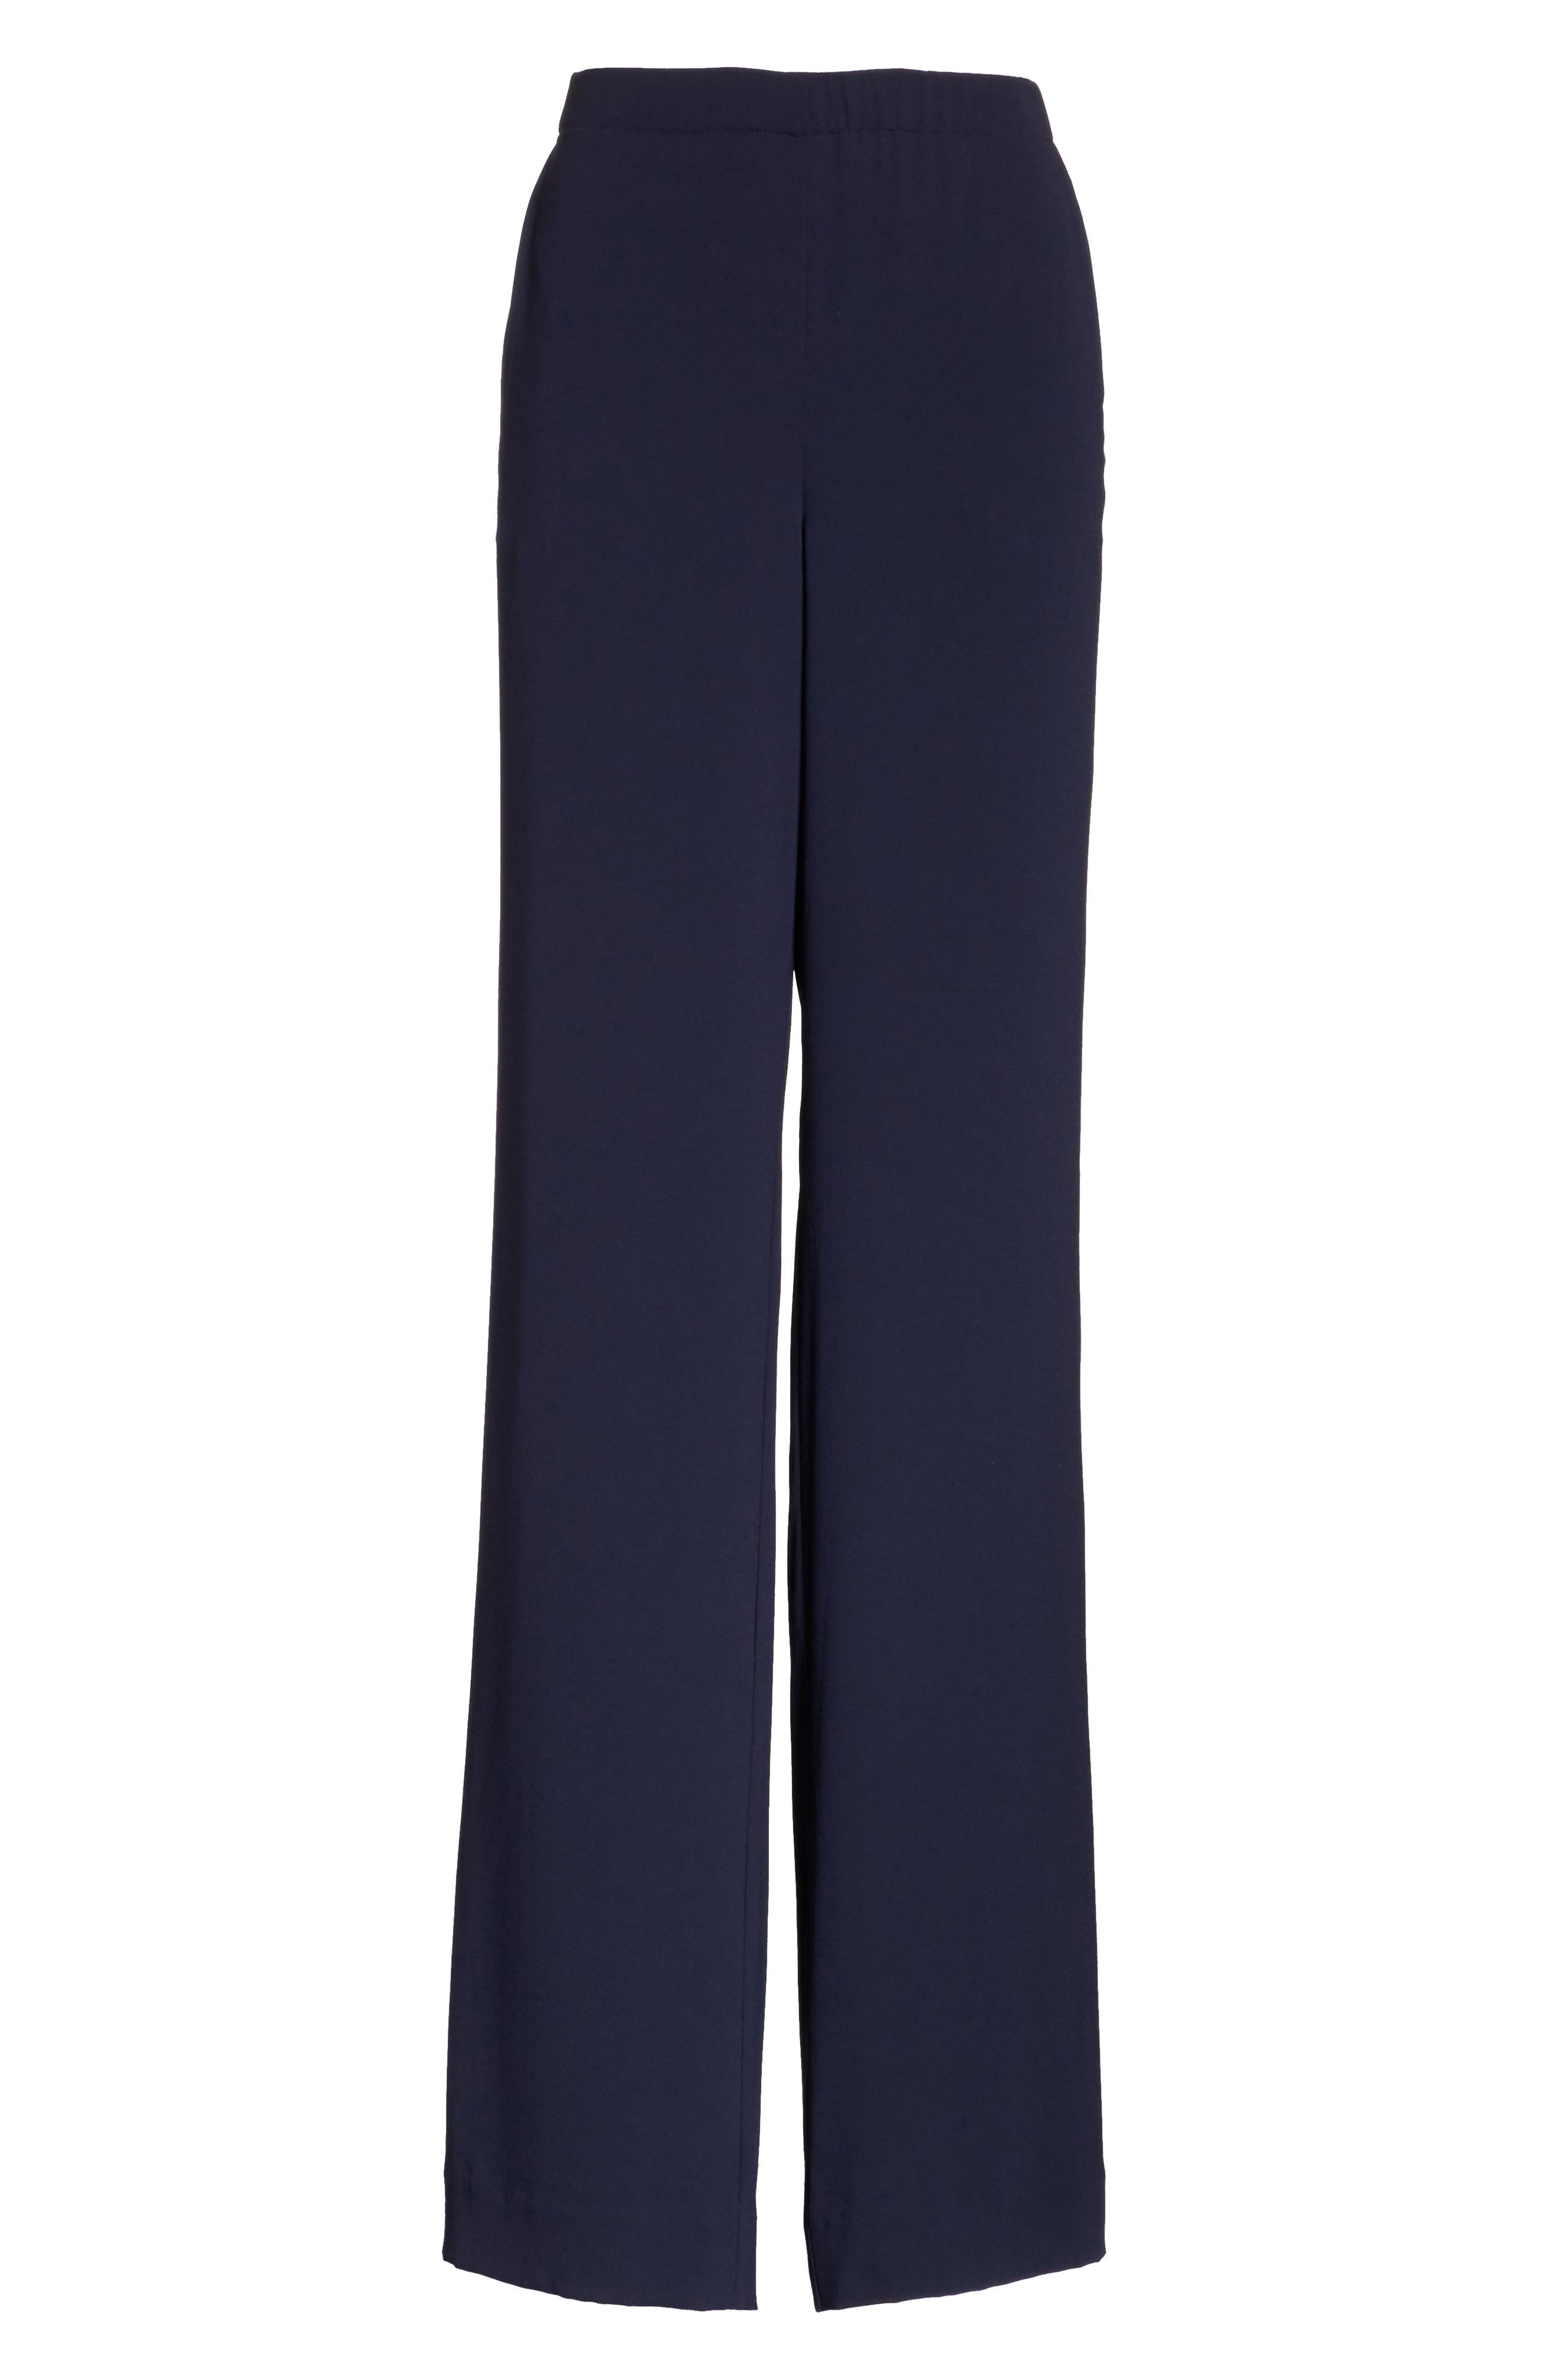 Satin Back Crepe Pants,                             Alternate thumbnail 6, color,                             Navy